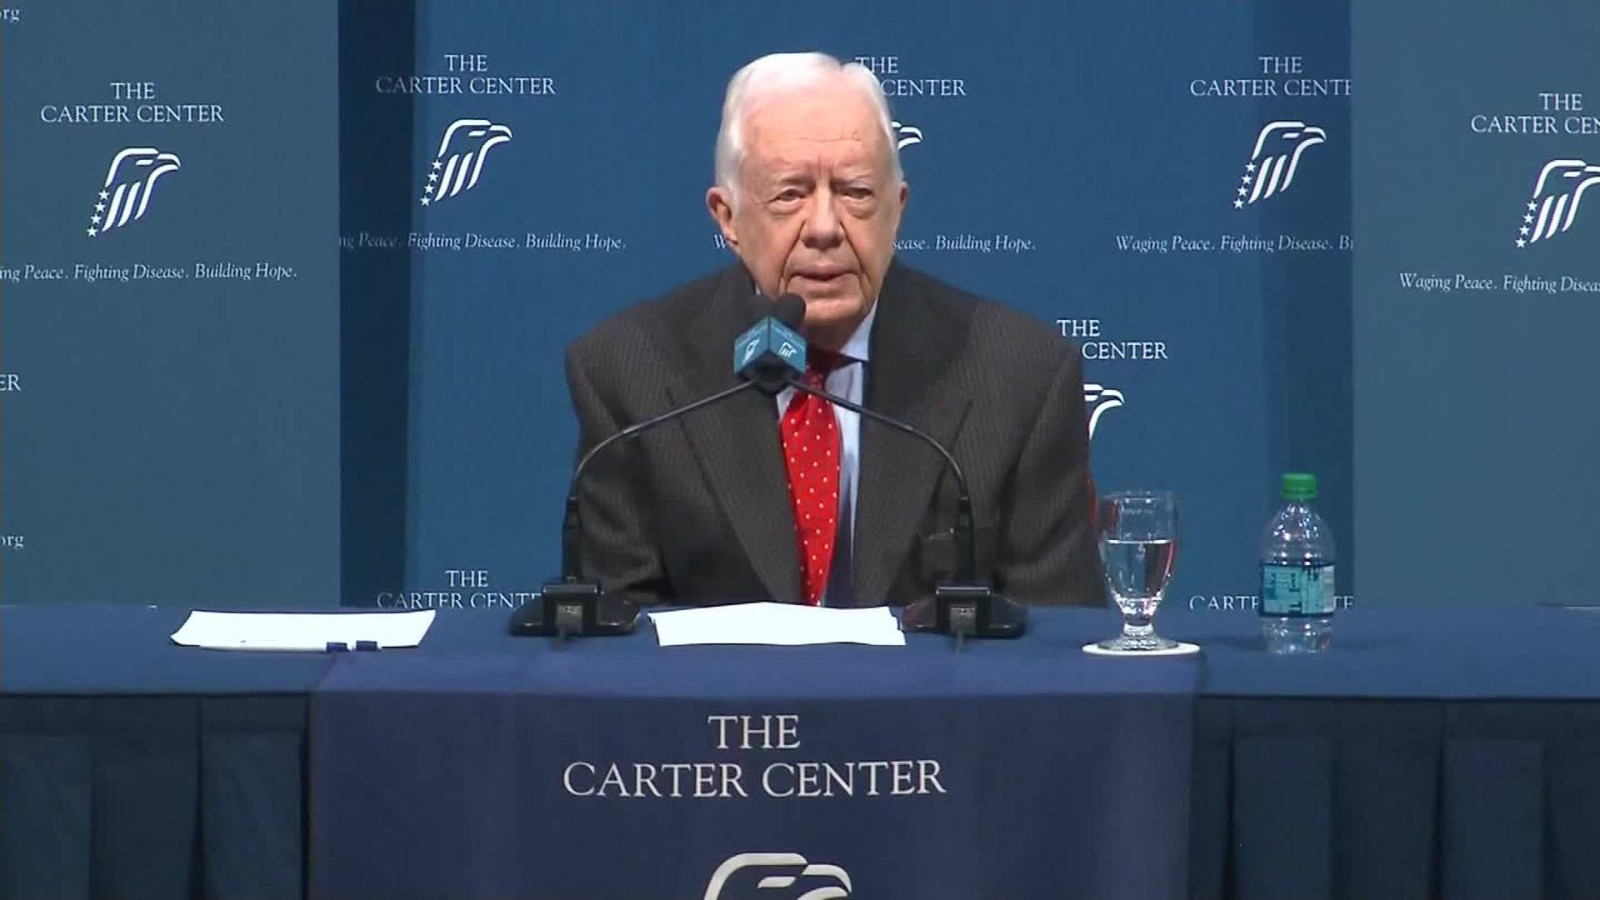 Jimmy Carter on cancer: Future in God's hands